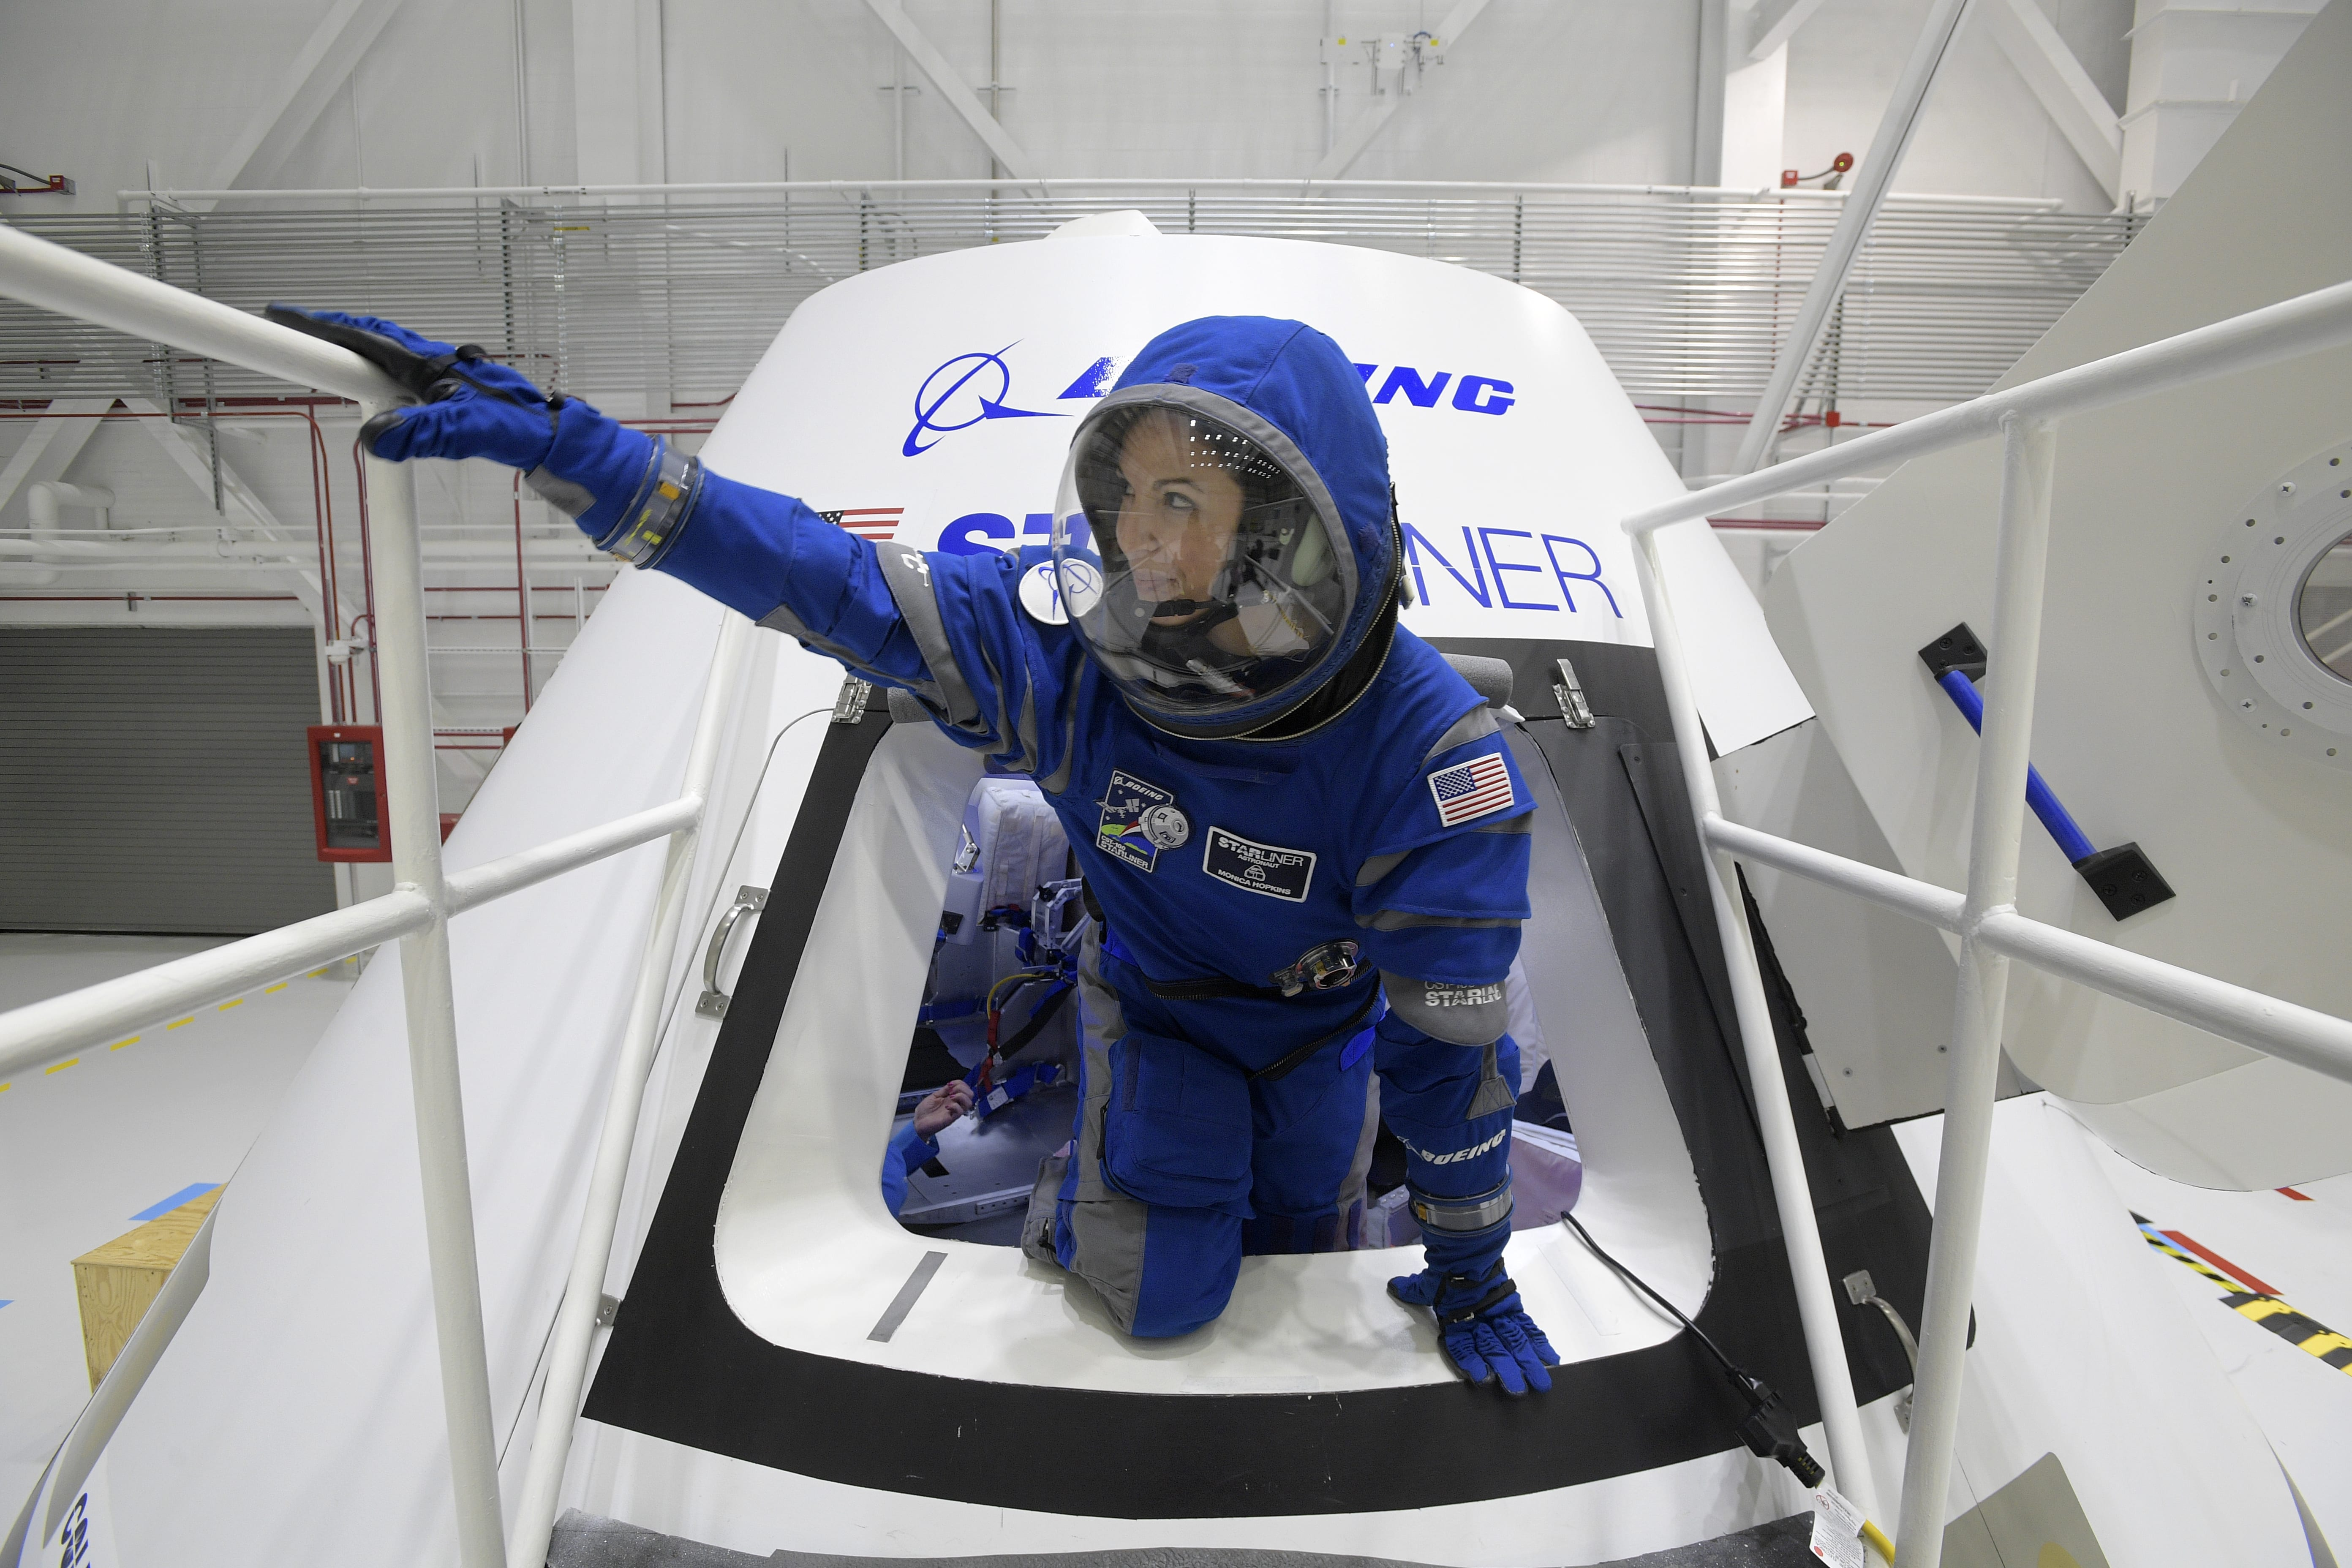 Boeing Starliner Delayed Due to ISS 'Traffic Jam' Created by SpaceX